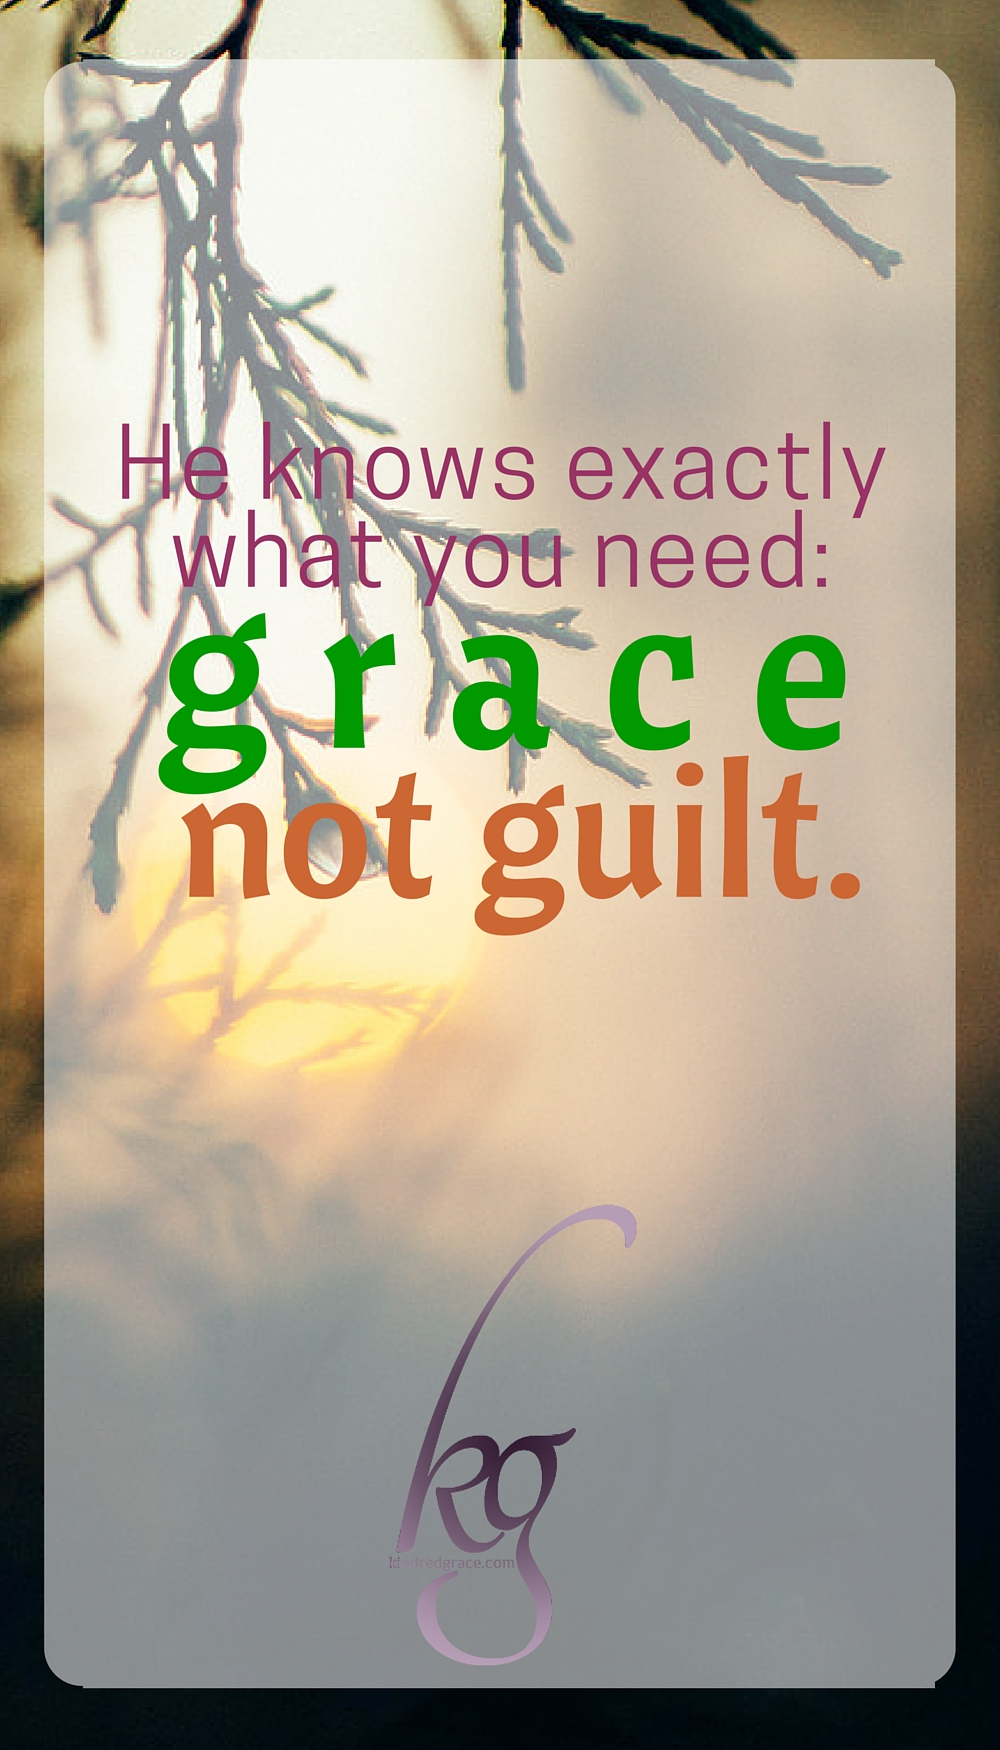 Grace far outweighs our sin. Cling to grace. via @KindredGrace